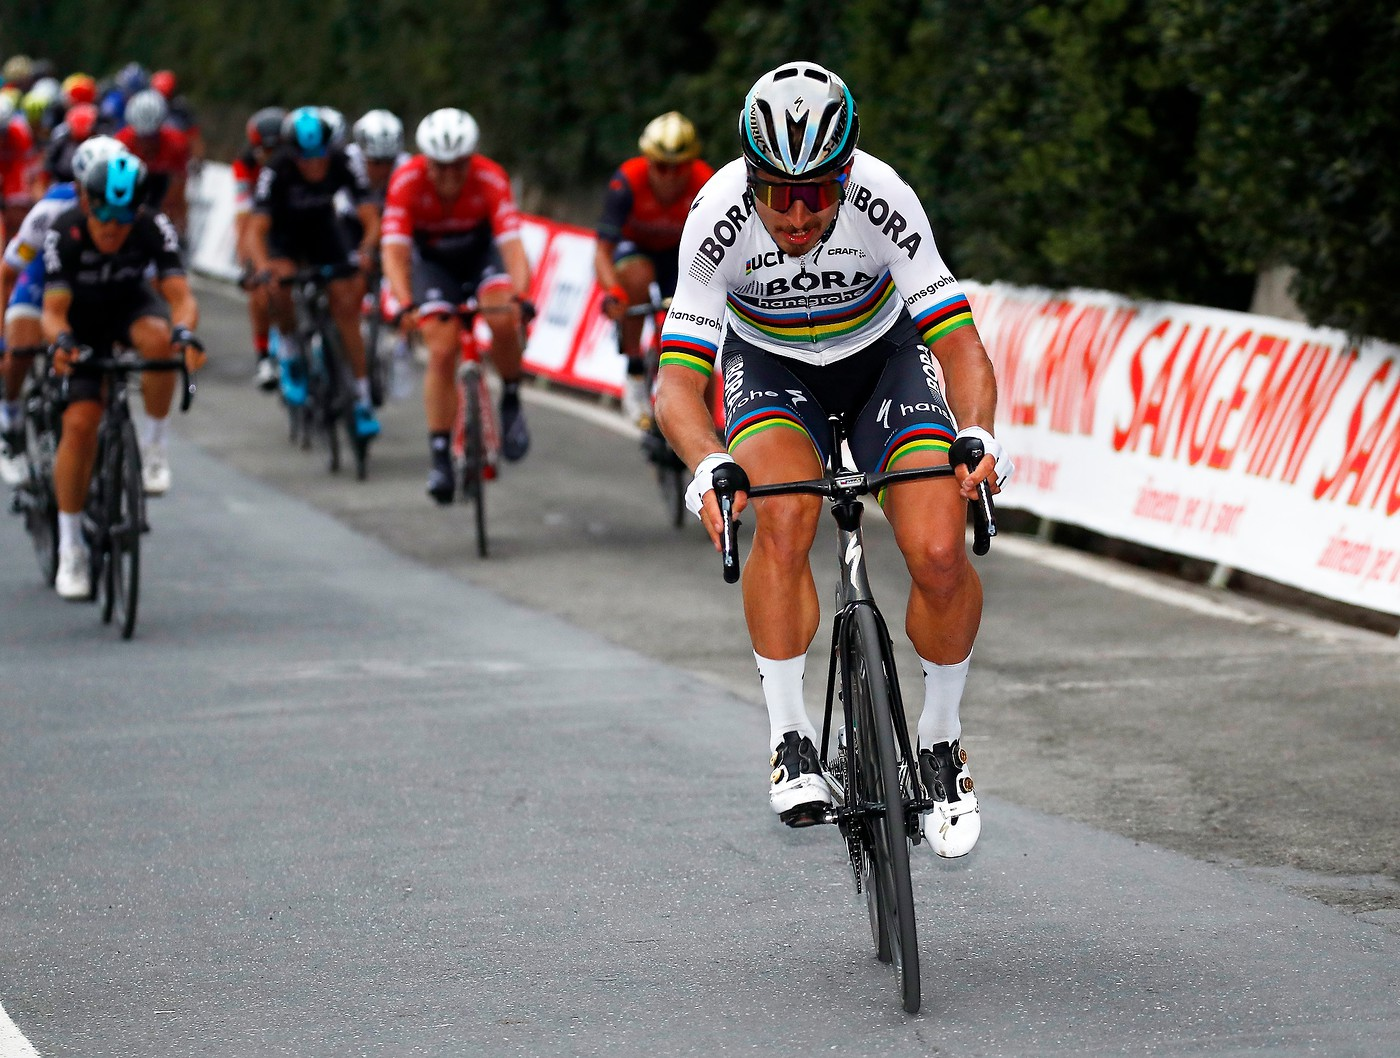 Peter Sagan attacks